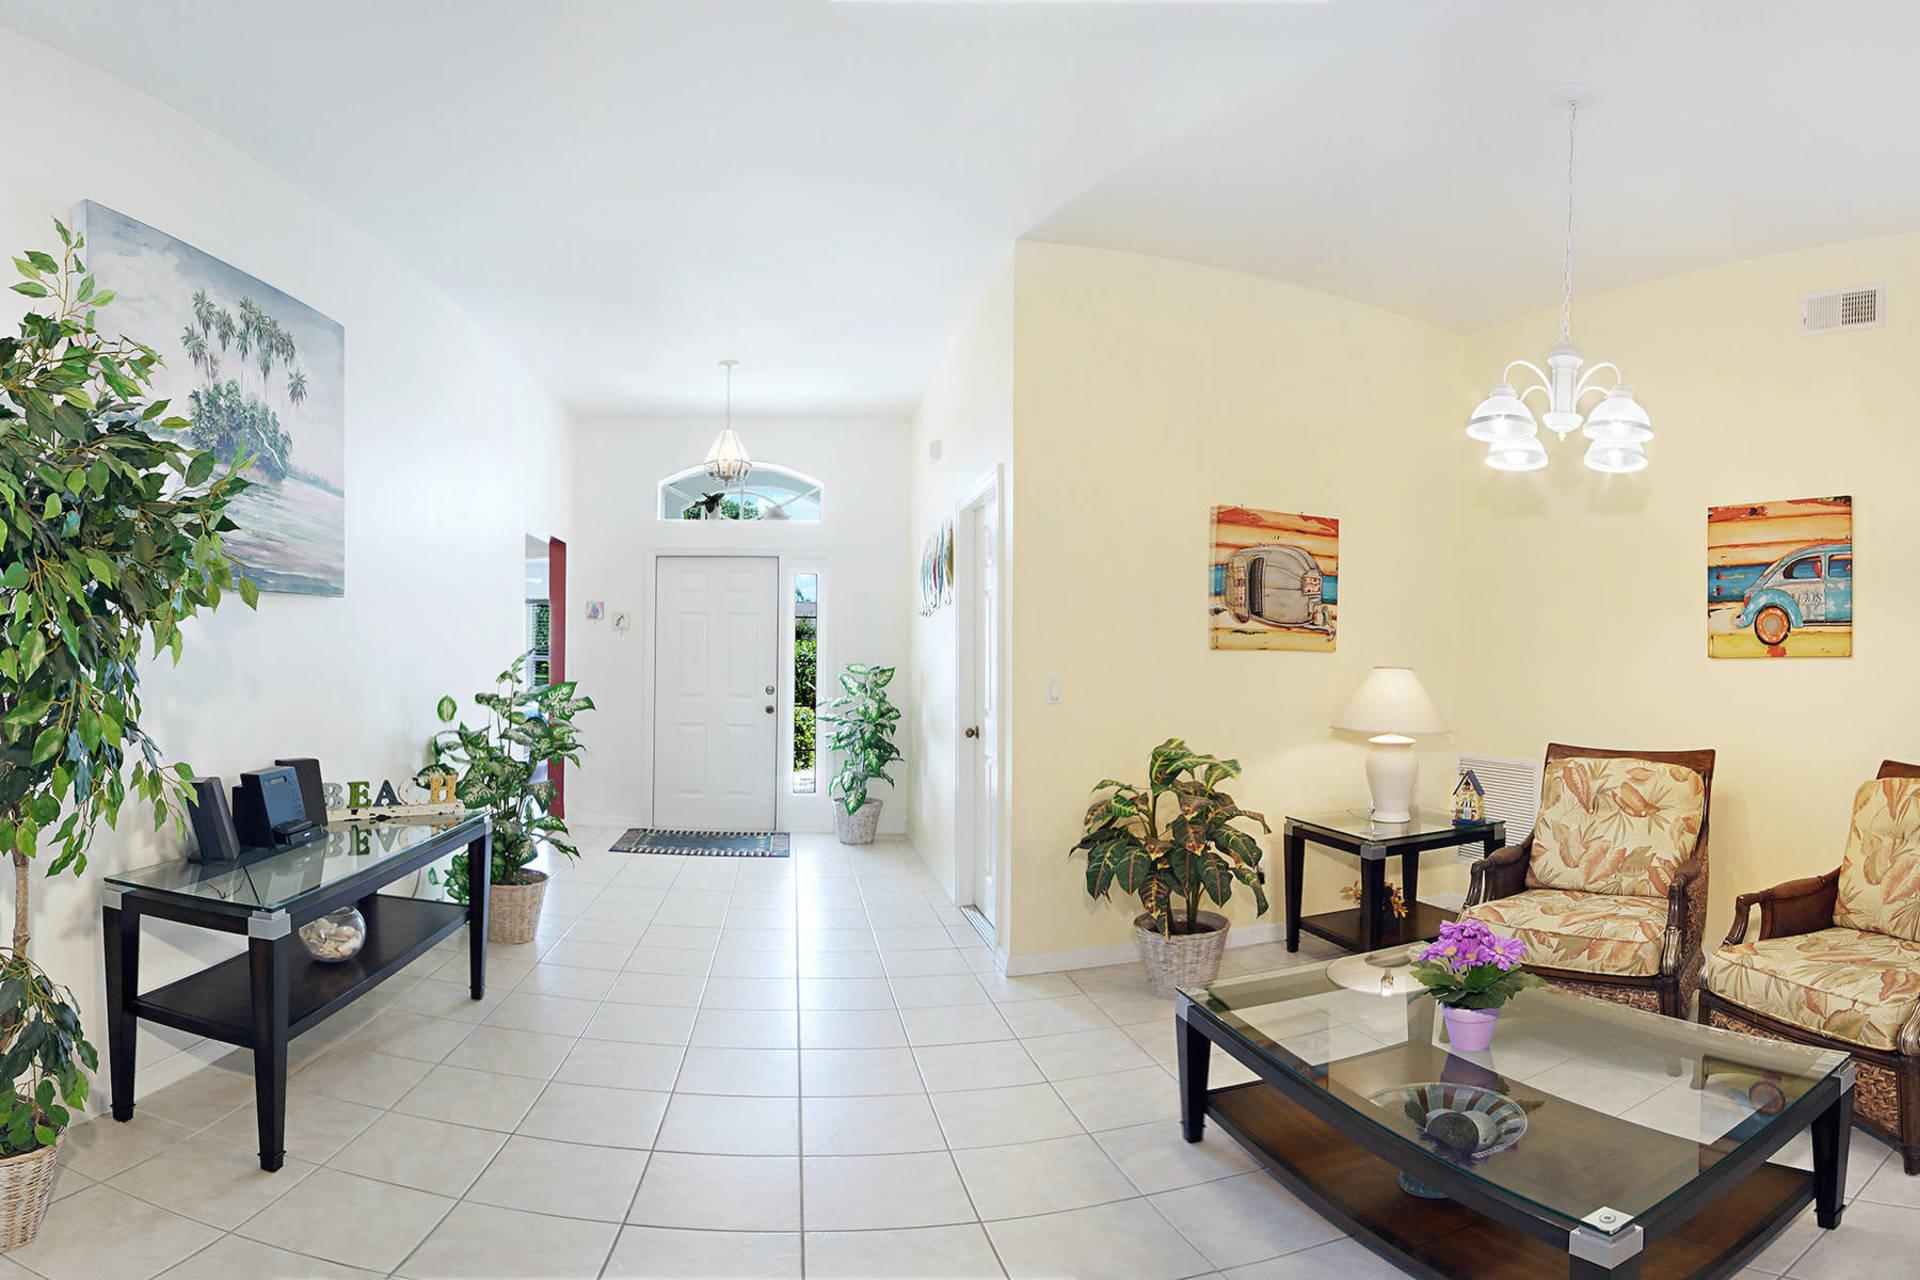 Wischis Florida Home - Vacation Rentals Fort Myers I Property Management I Real Estate